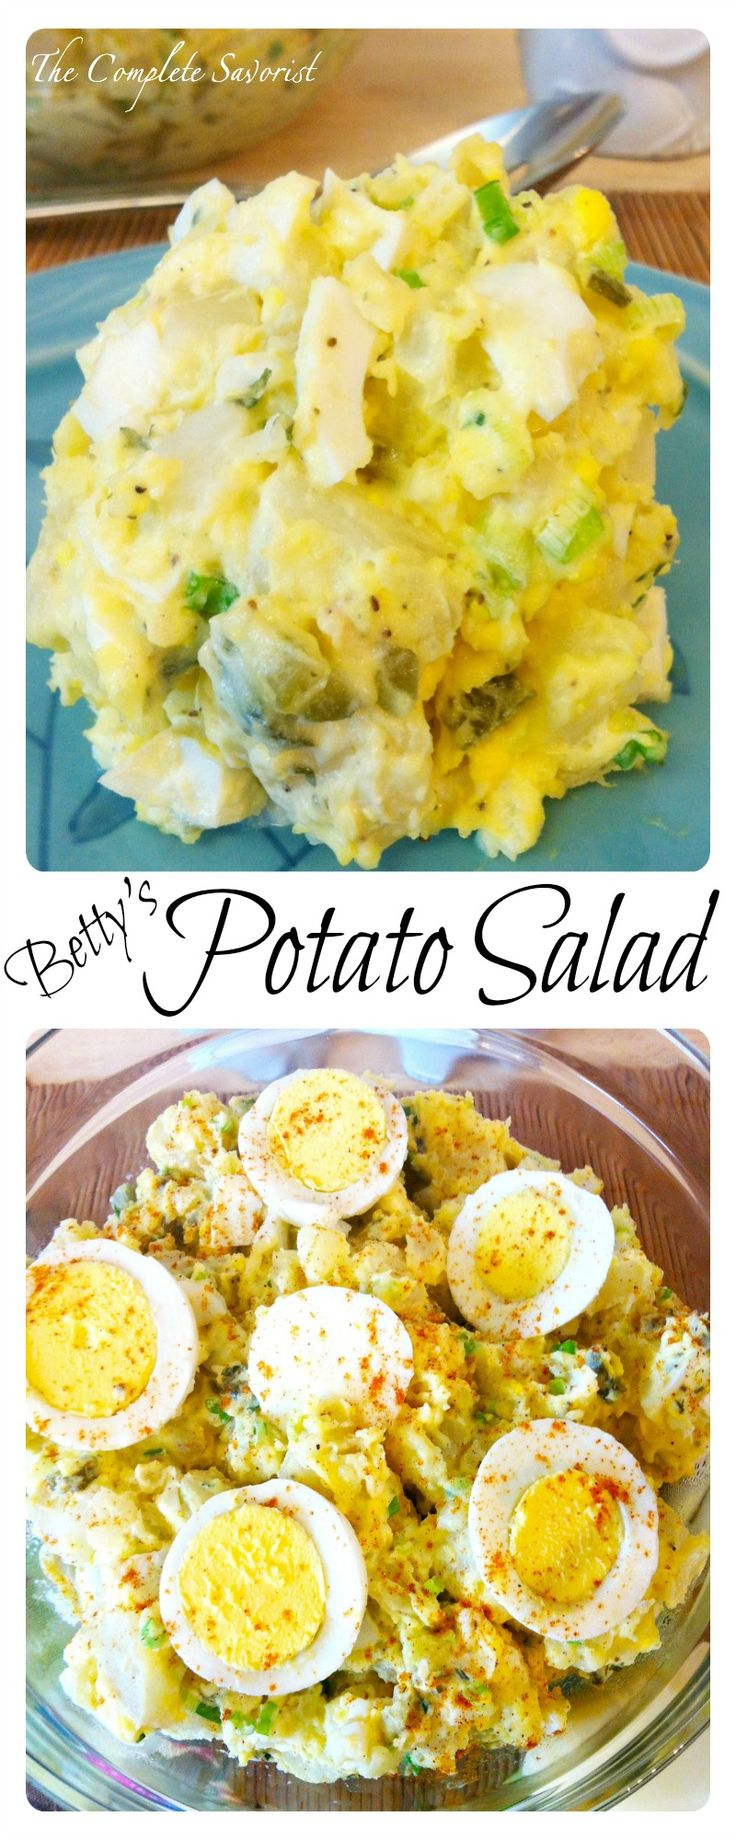 Betty's Potato Salad ~The Complete Savorist Family recipe for potato salad that is simple to make and beyond delicious; great for holidays, picnics, barbecues, or simply eating out of the bowl on a Wednesday.